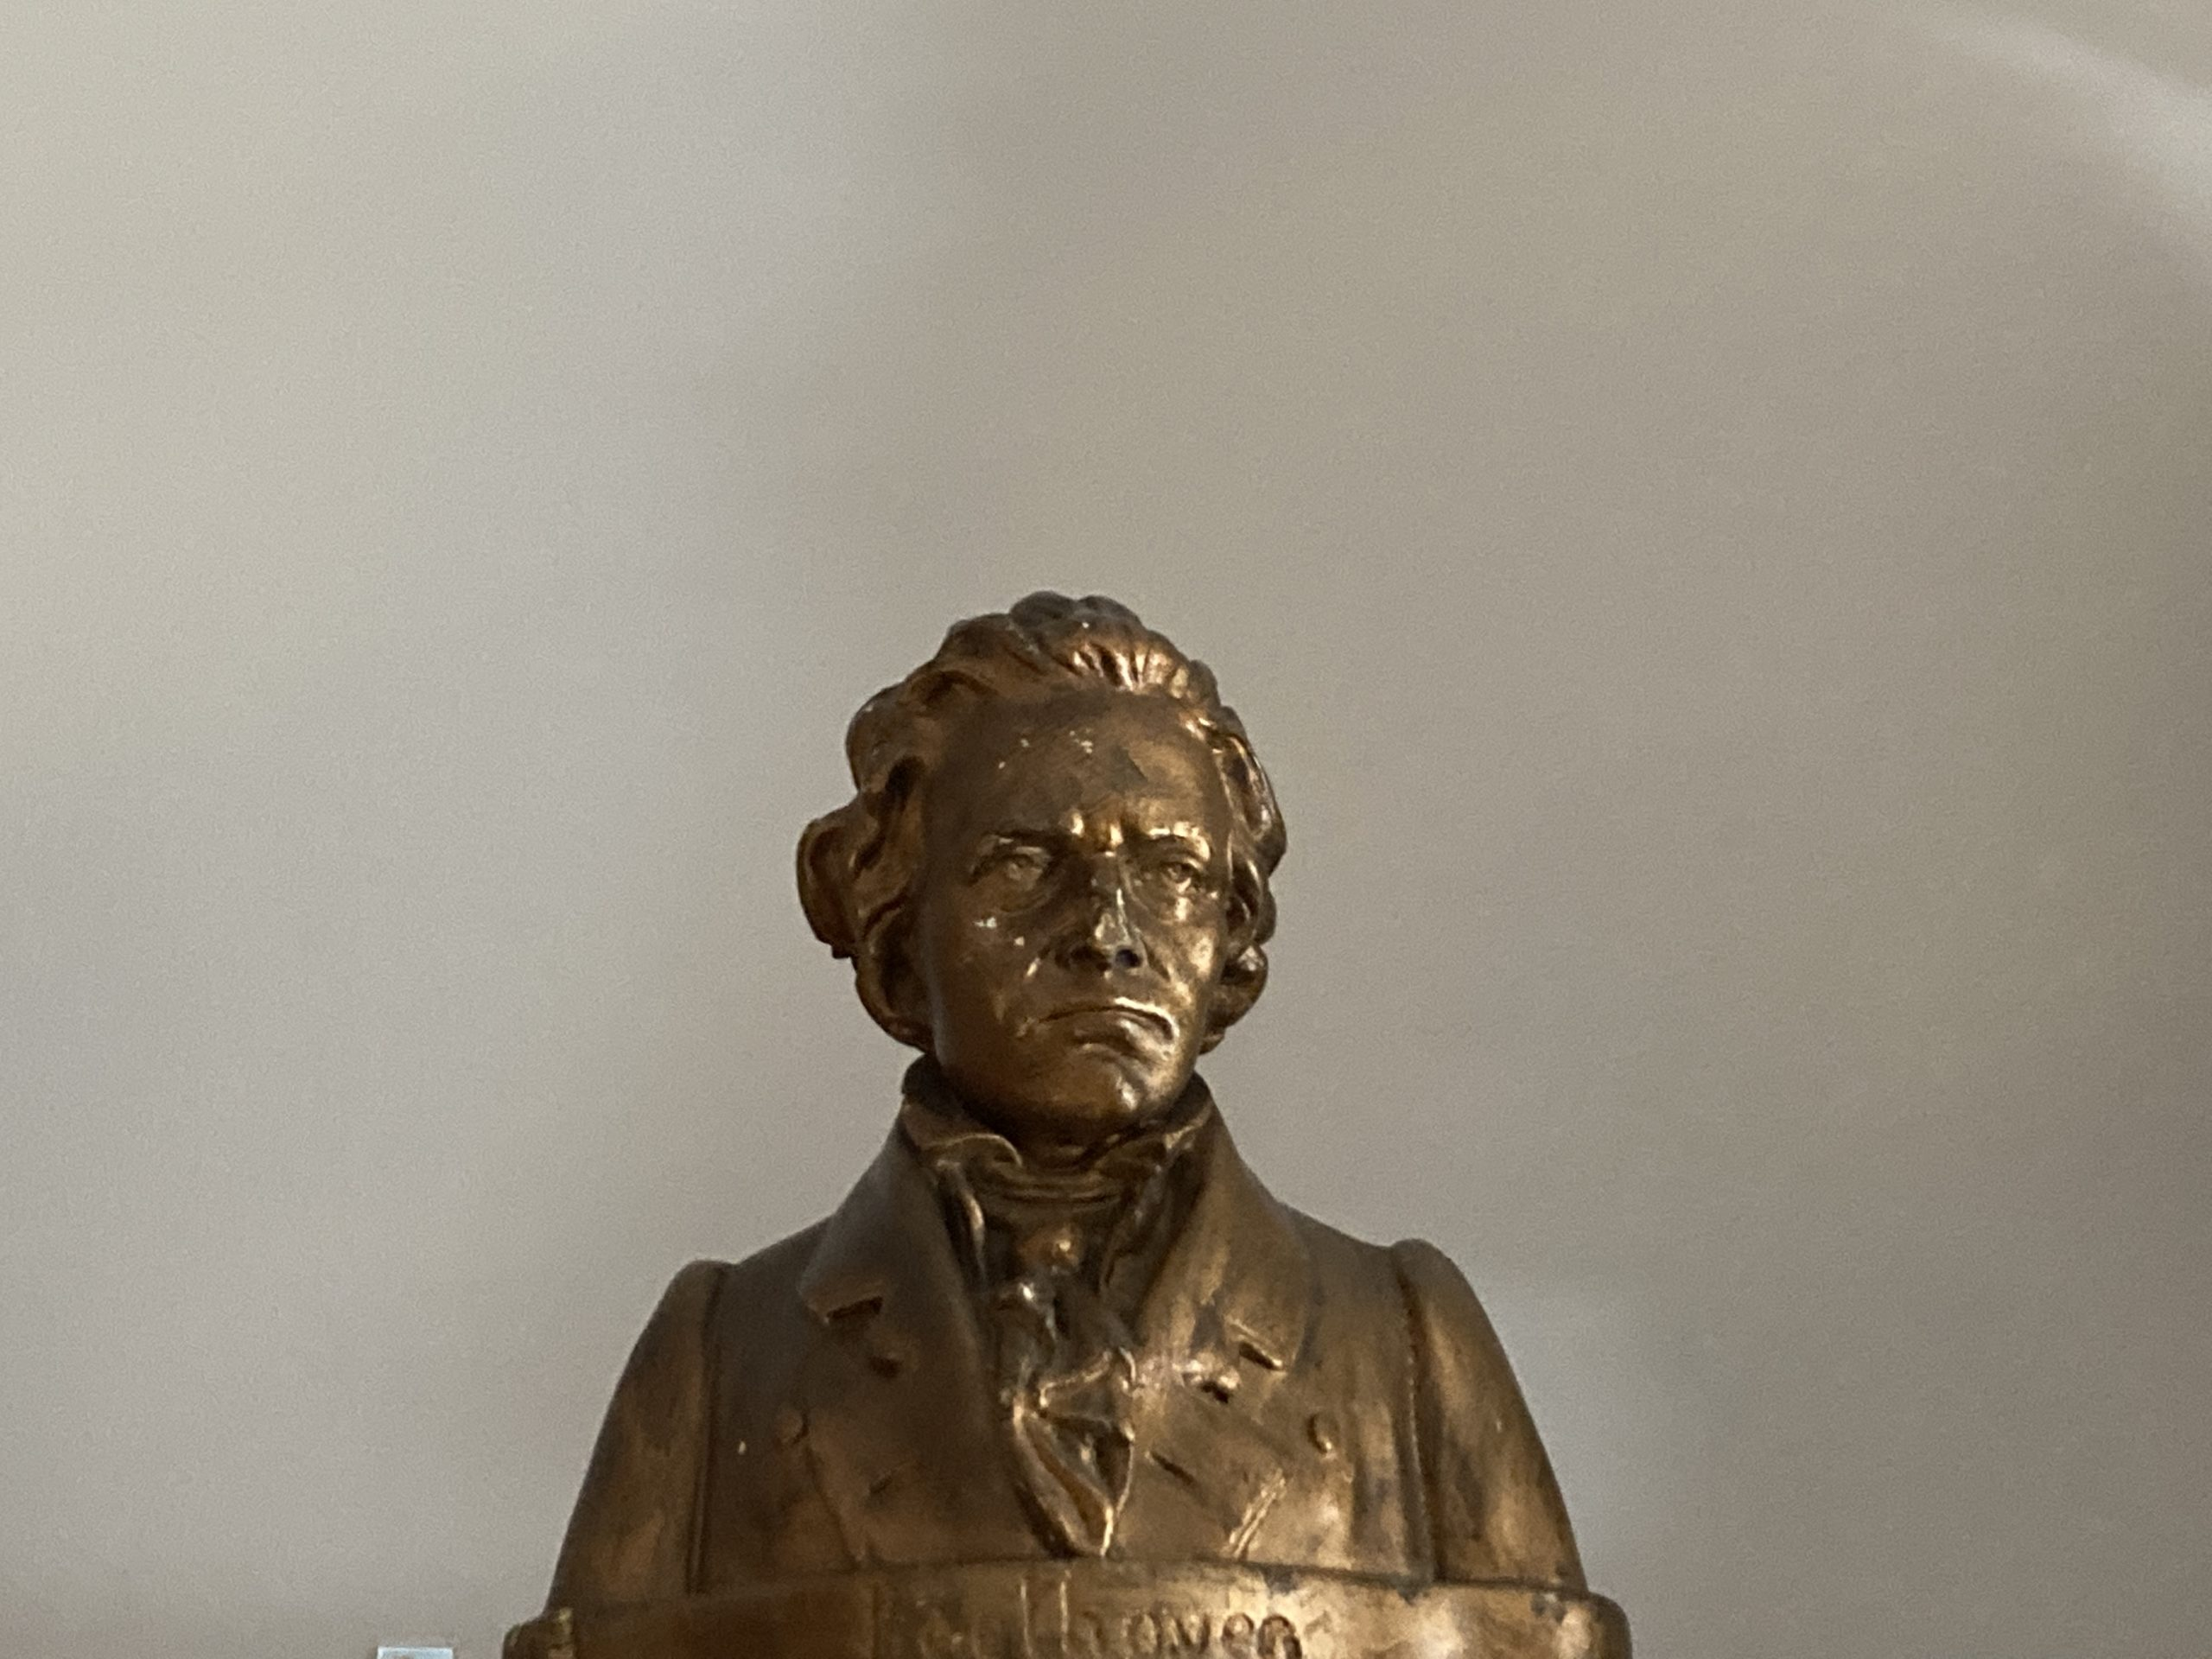 Beethoven, classical, bust, music, decor, composer